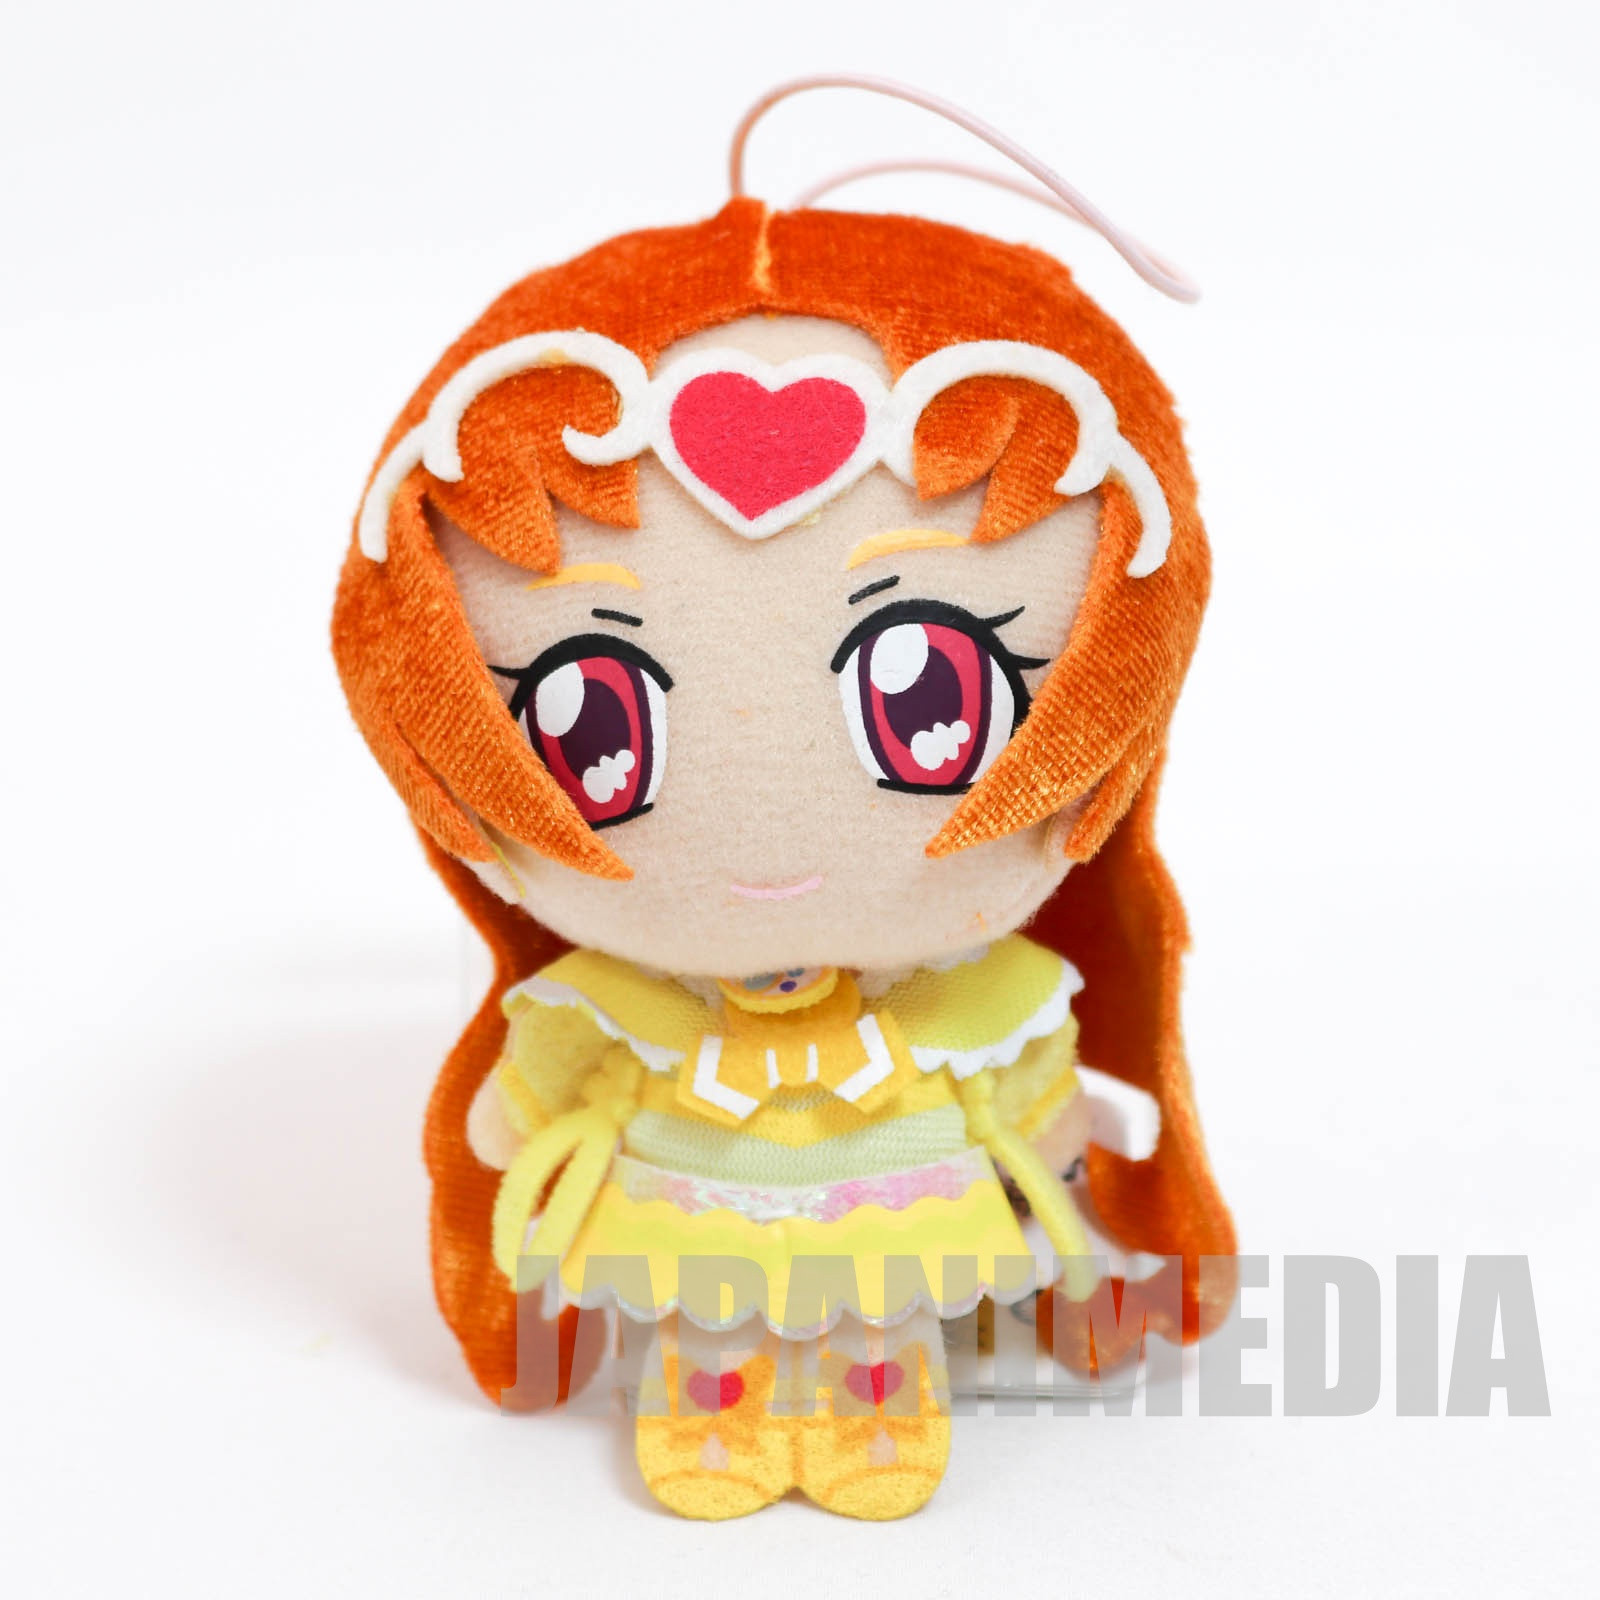 Suite PreCure Cure Muse PreCure Plush doll with strap JAPAN ANIME